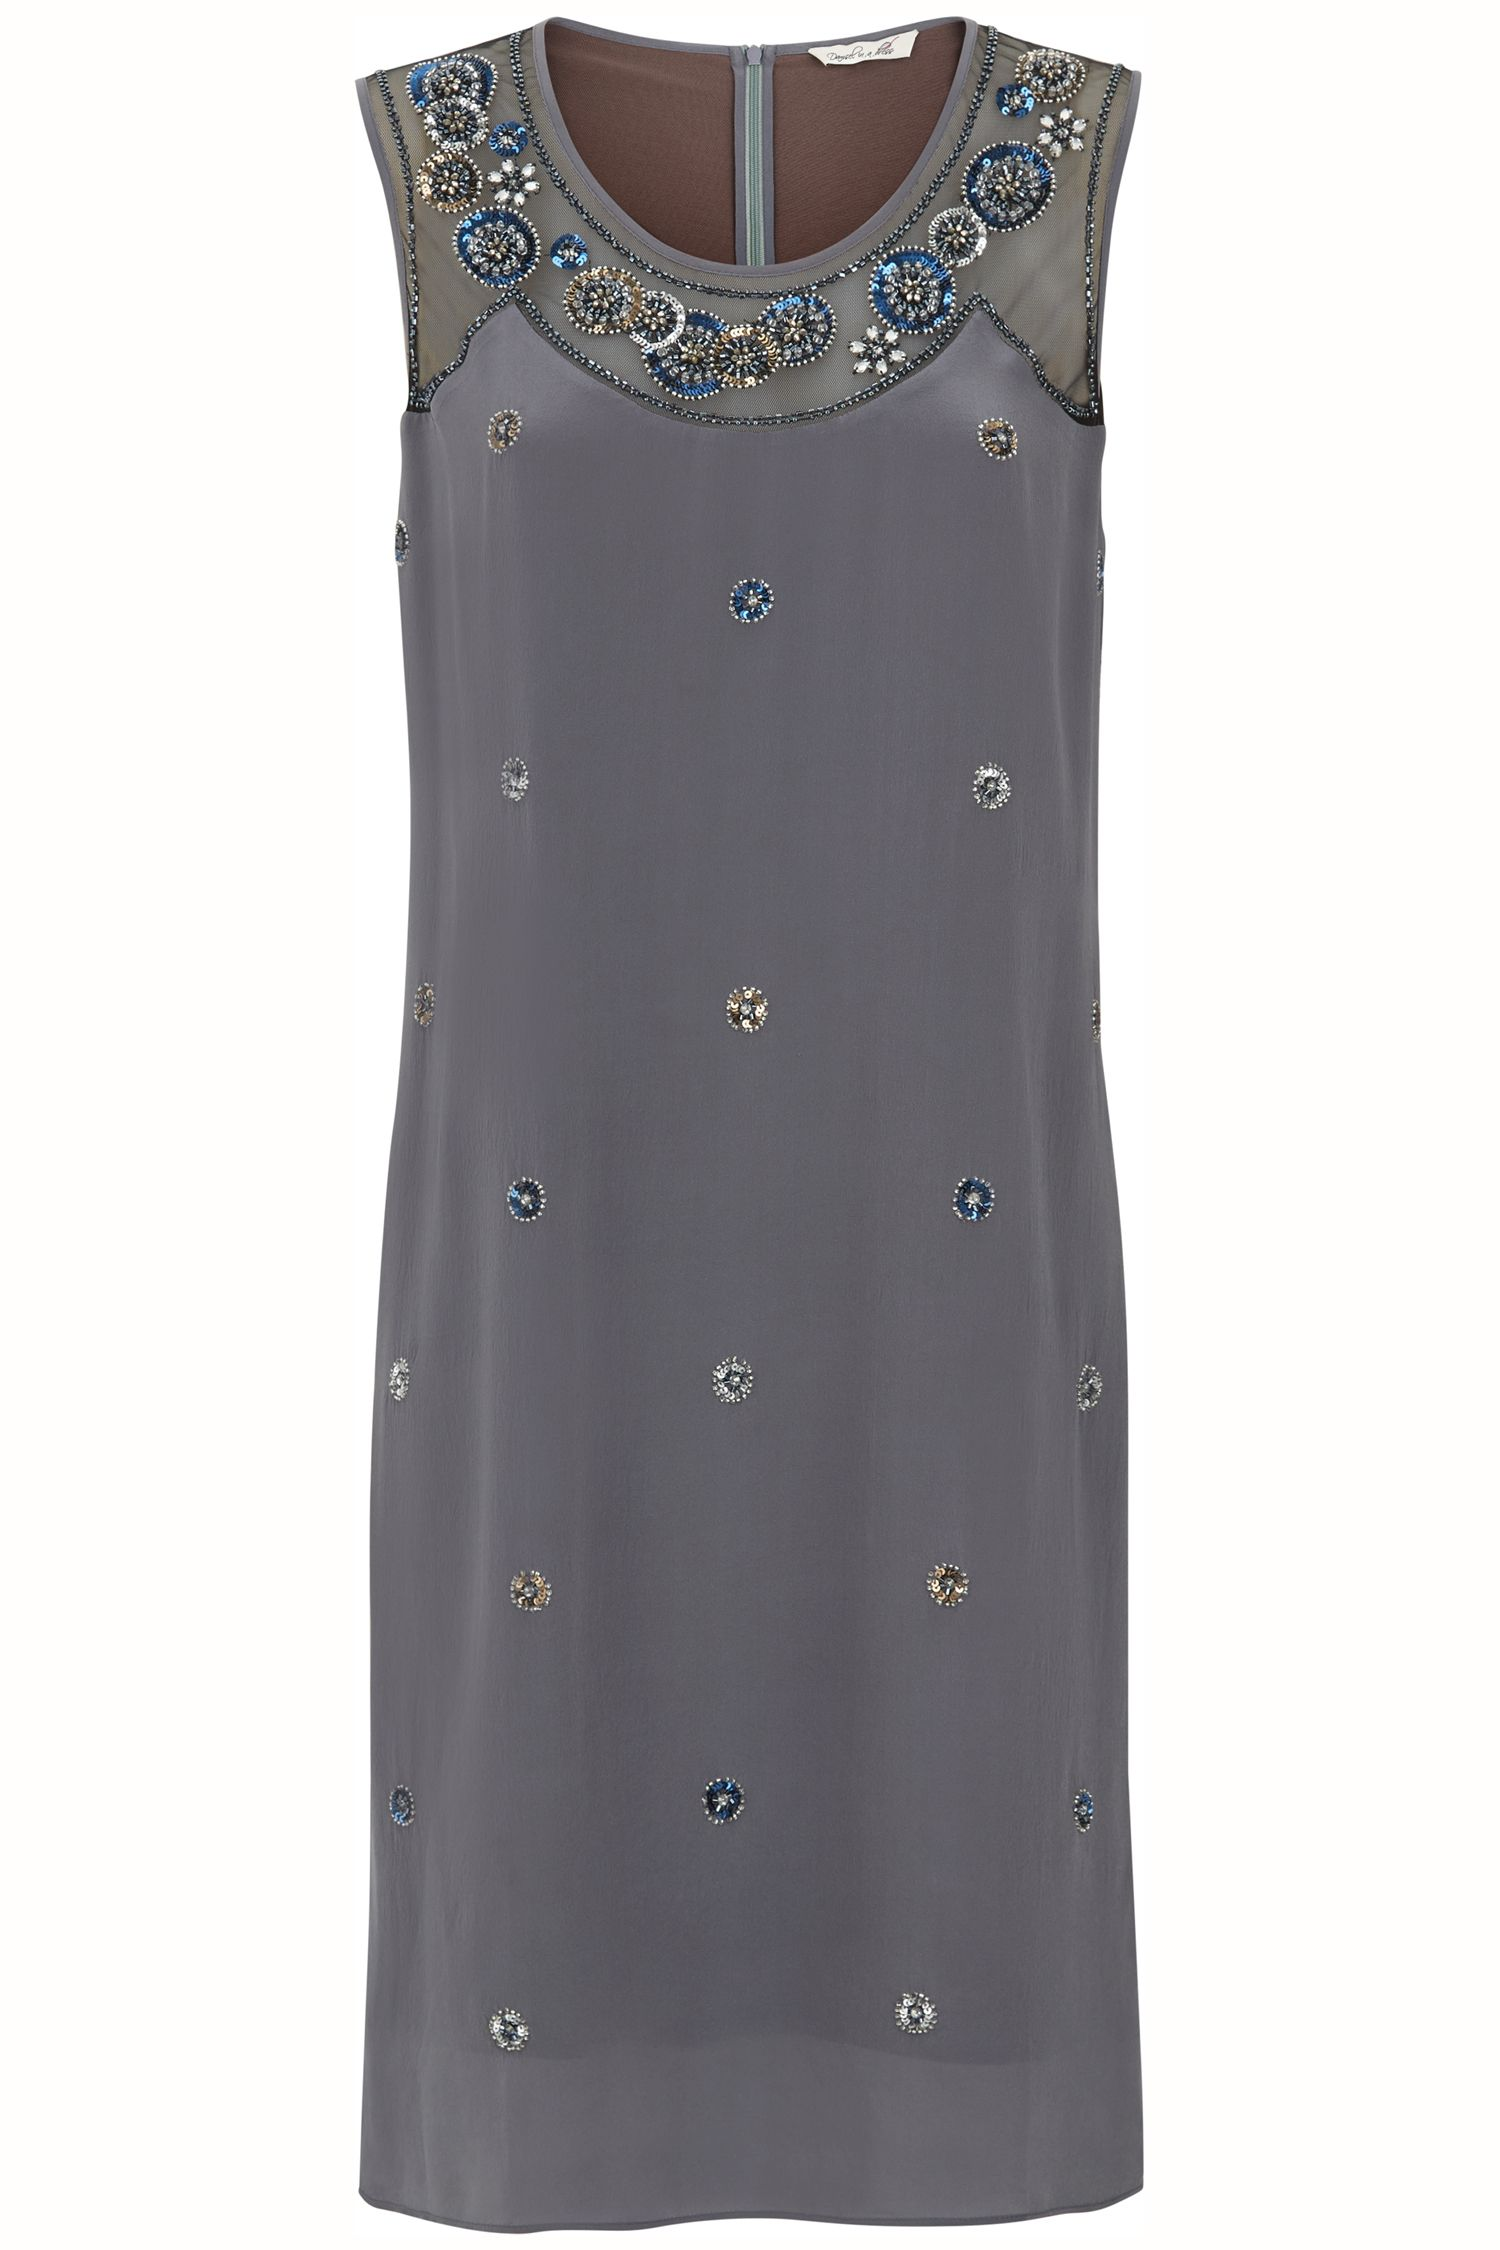 Damsel in a Dress Gudi Dress, Grey